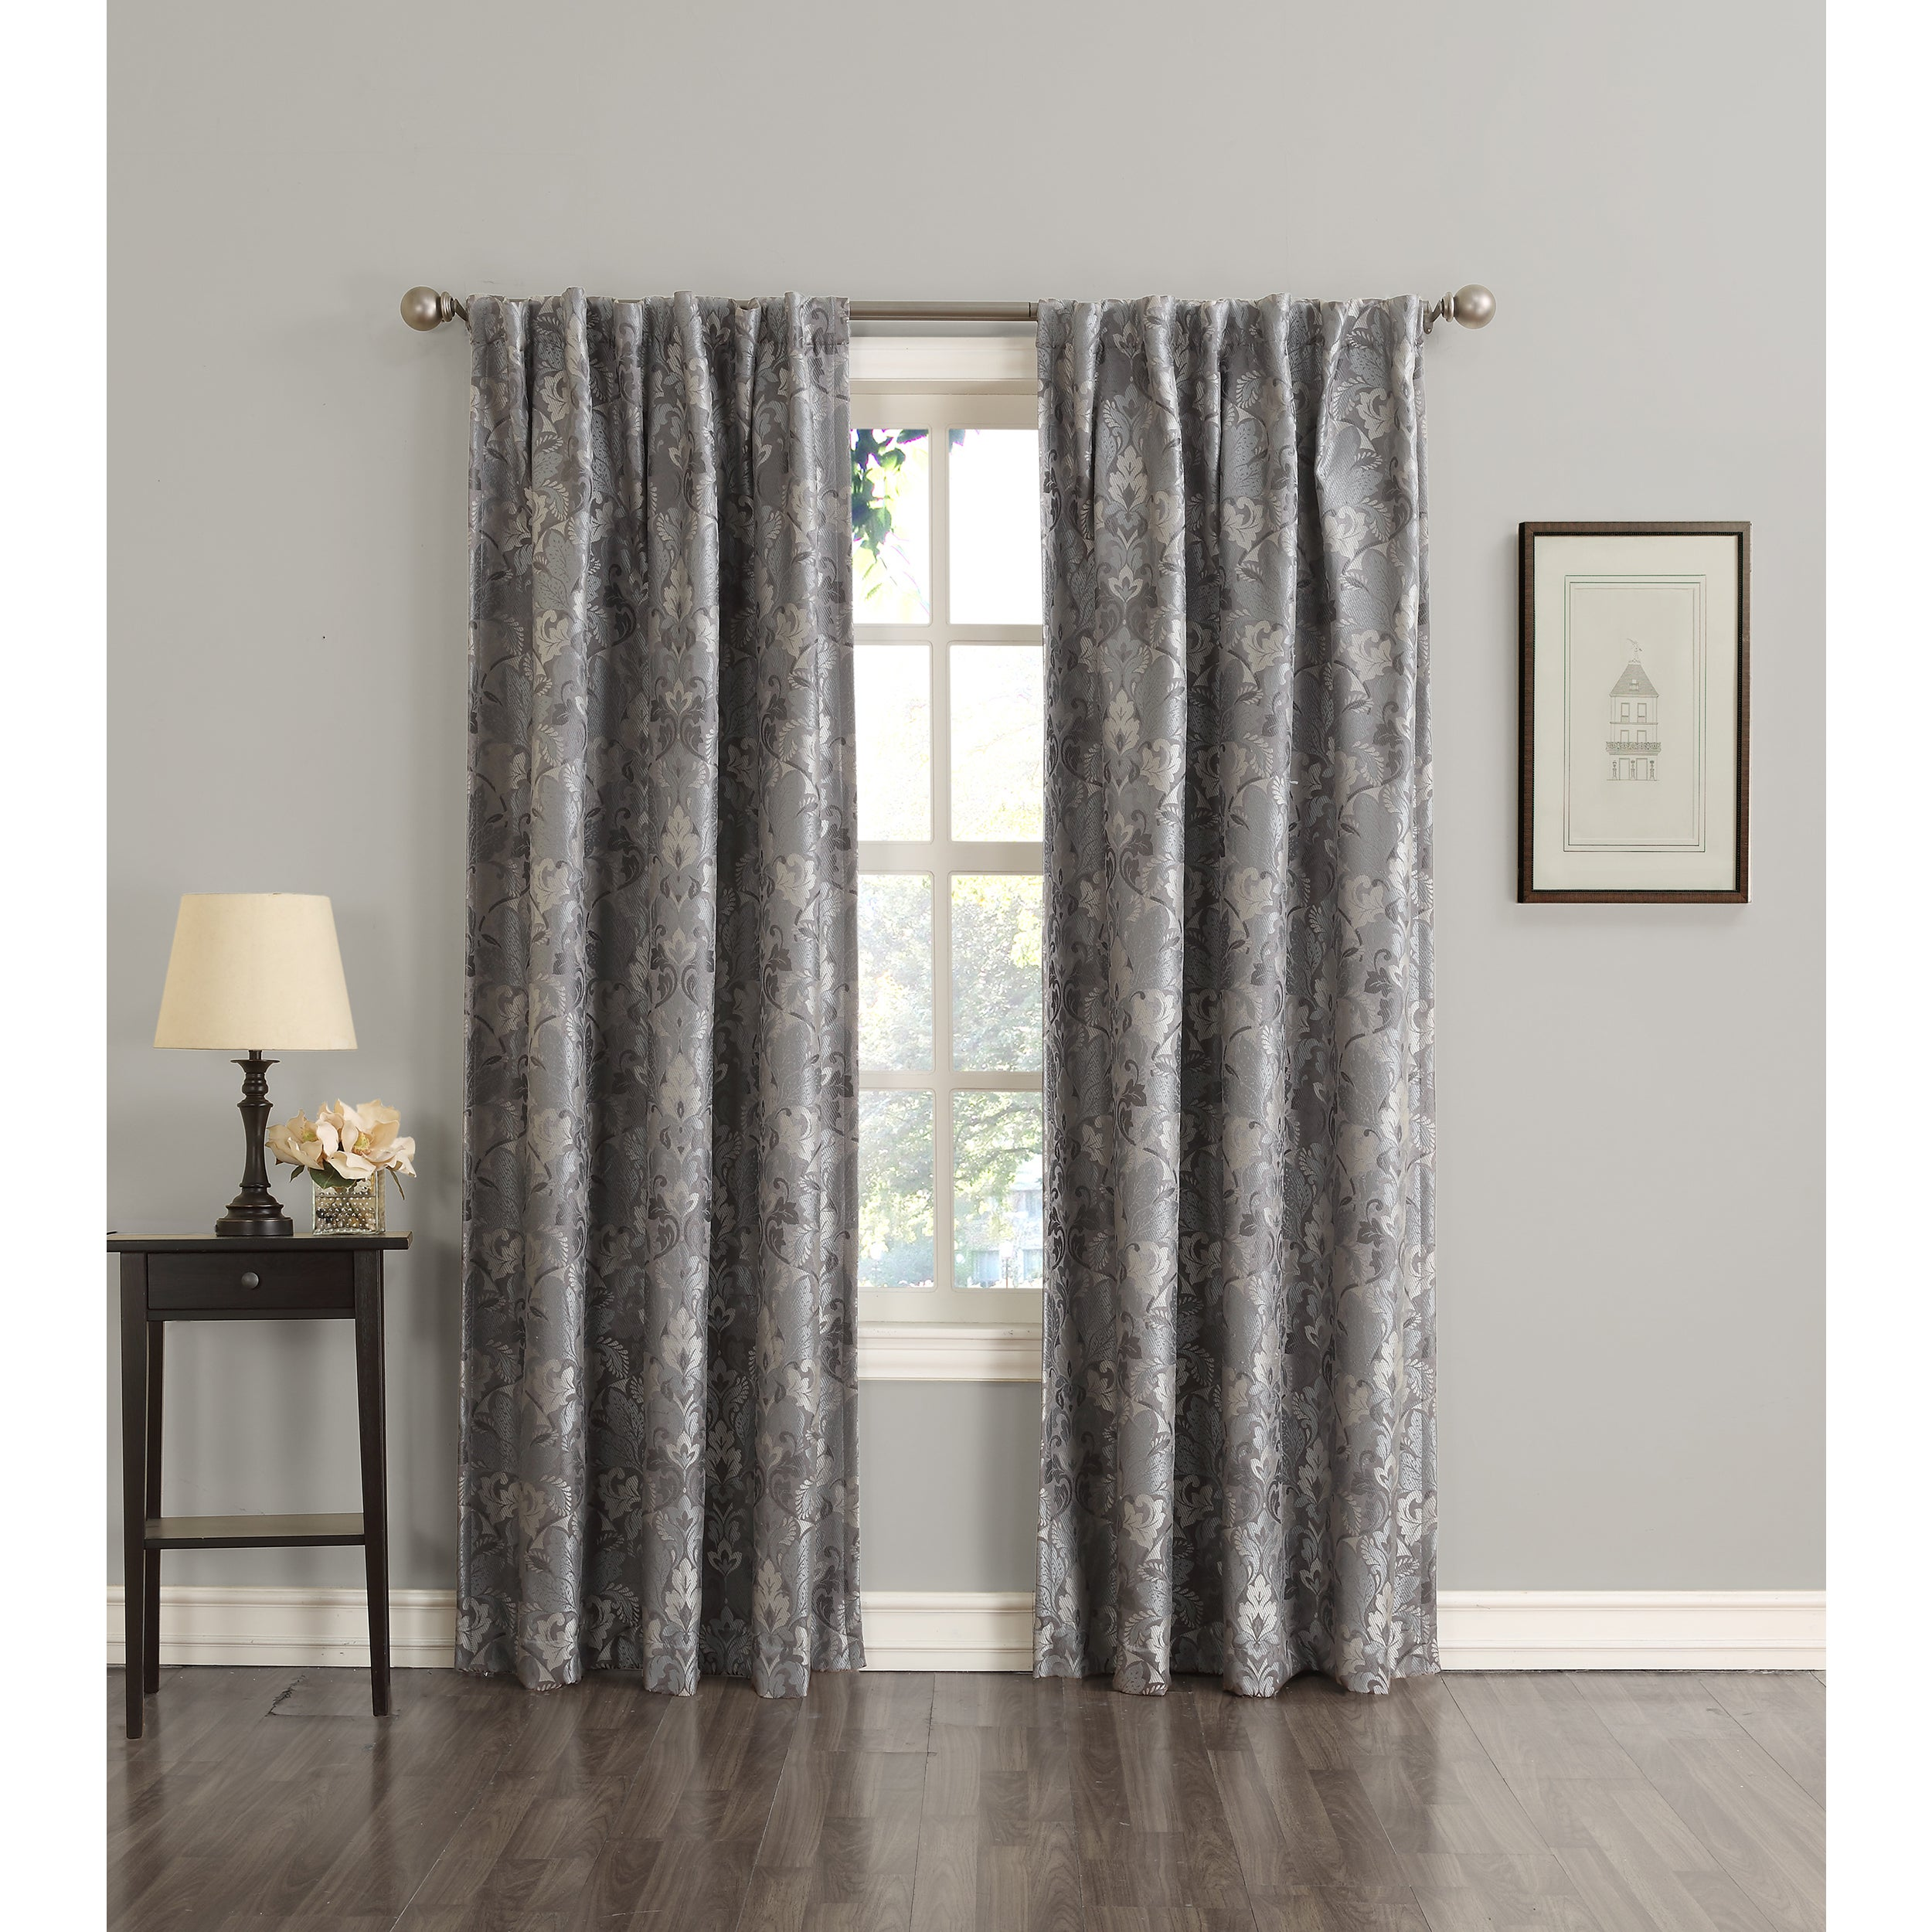 com walmart panel curtains helix curtain blackout mainstays ip energy efficient grommet